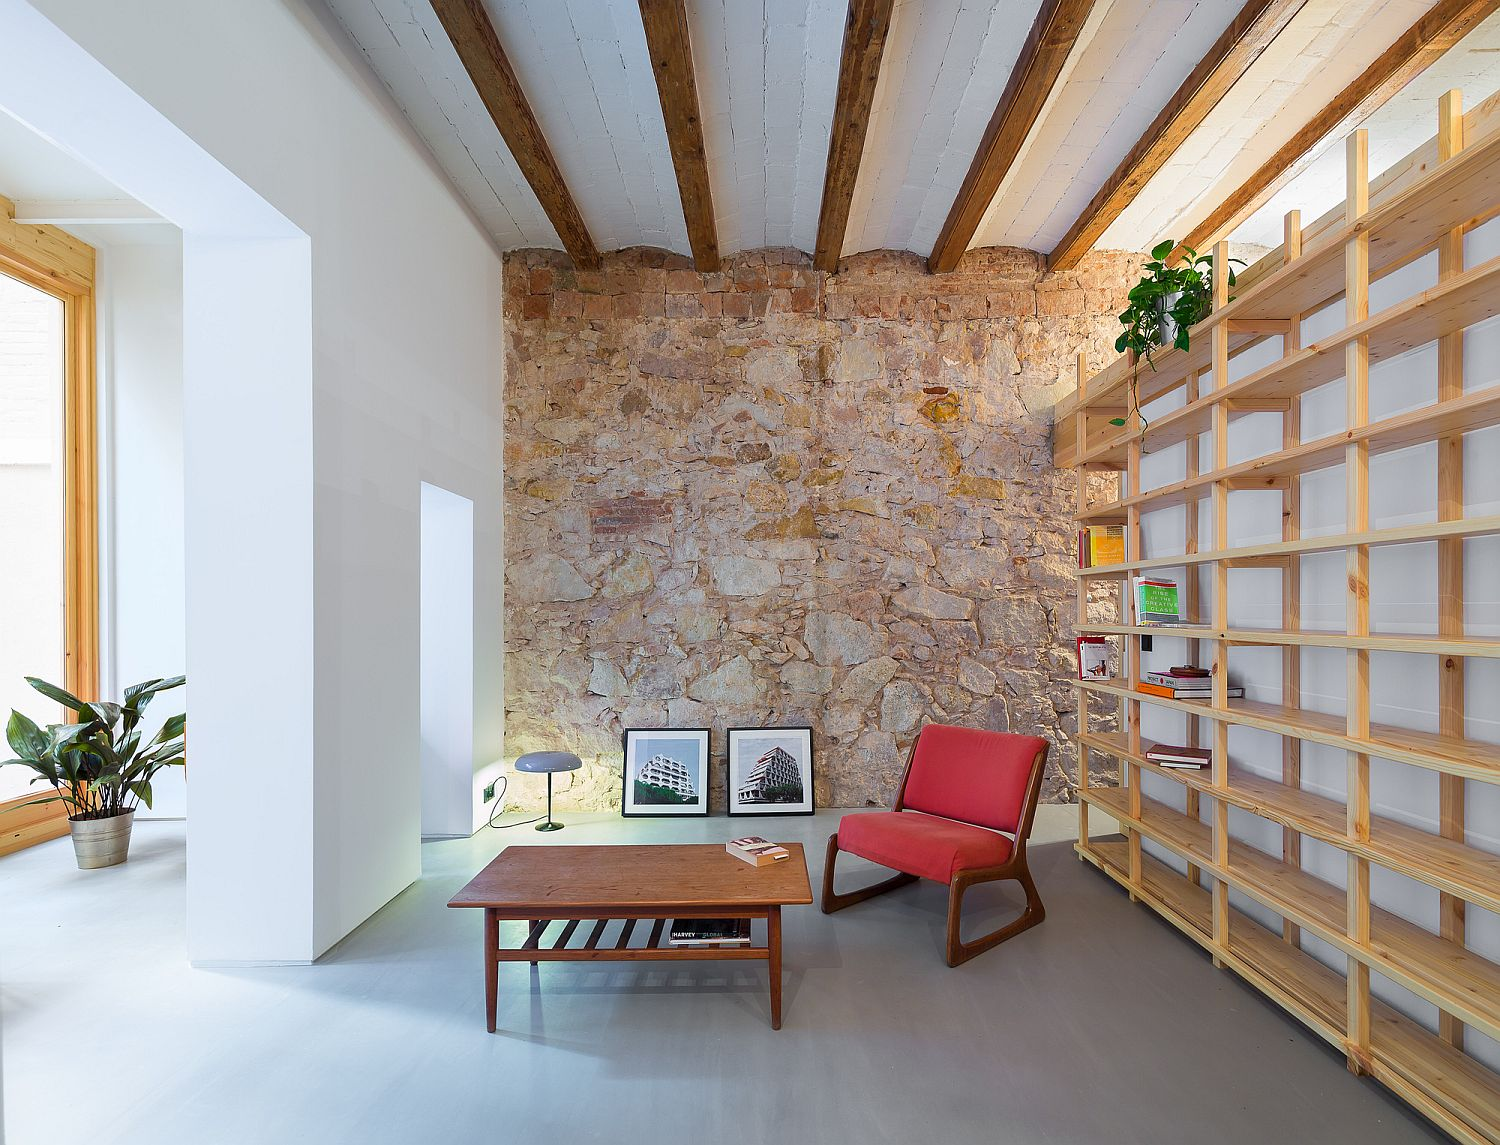 Existing walls and ceiling wooden beams bring in original charm of the Barcelona apartment